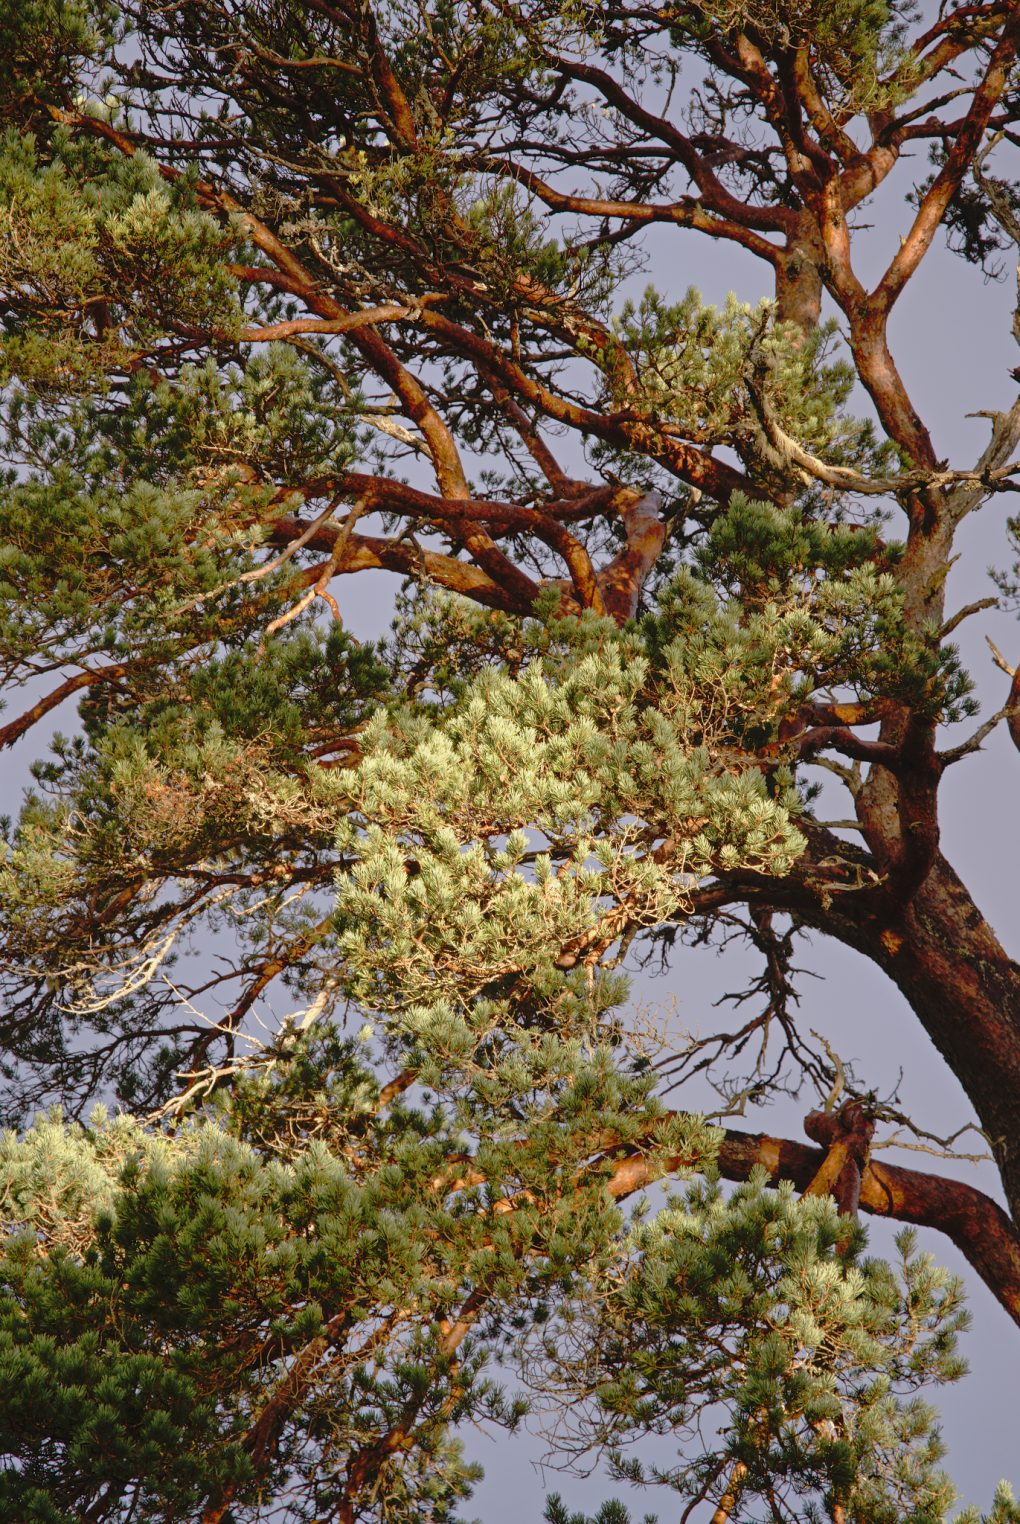 Stunning bright morning light catching the burnished brown bark of a Scots Pine tree